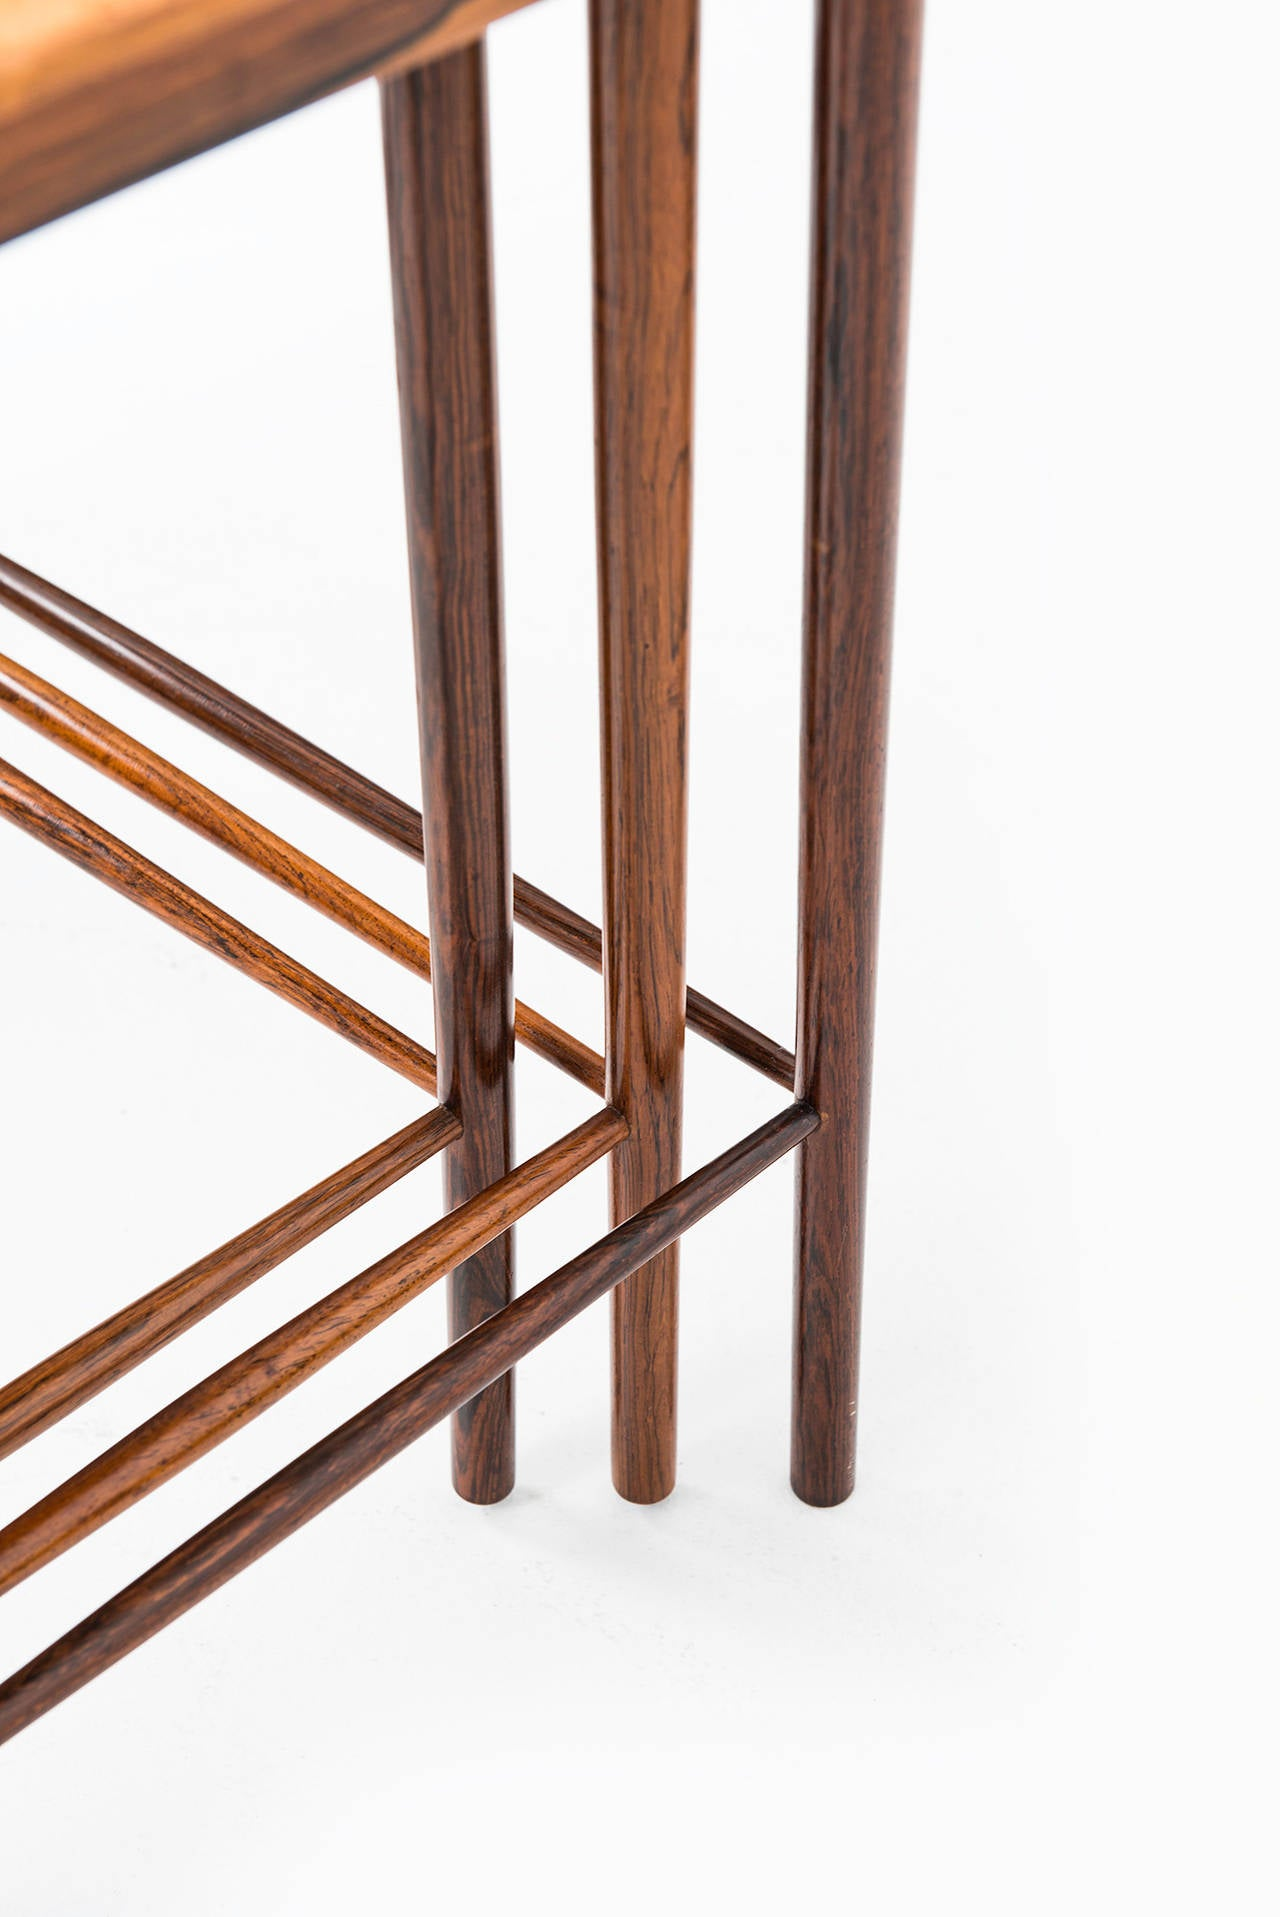 Marvelous Scandinavian Modern Grete Jalk Nesting Tables In Rosewood By P. Jeppesen In  Denmark For Sale Good Looking